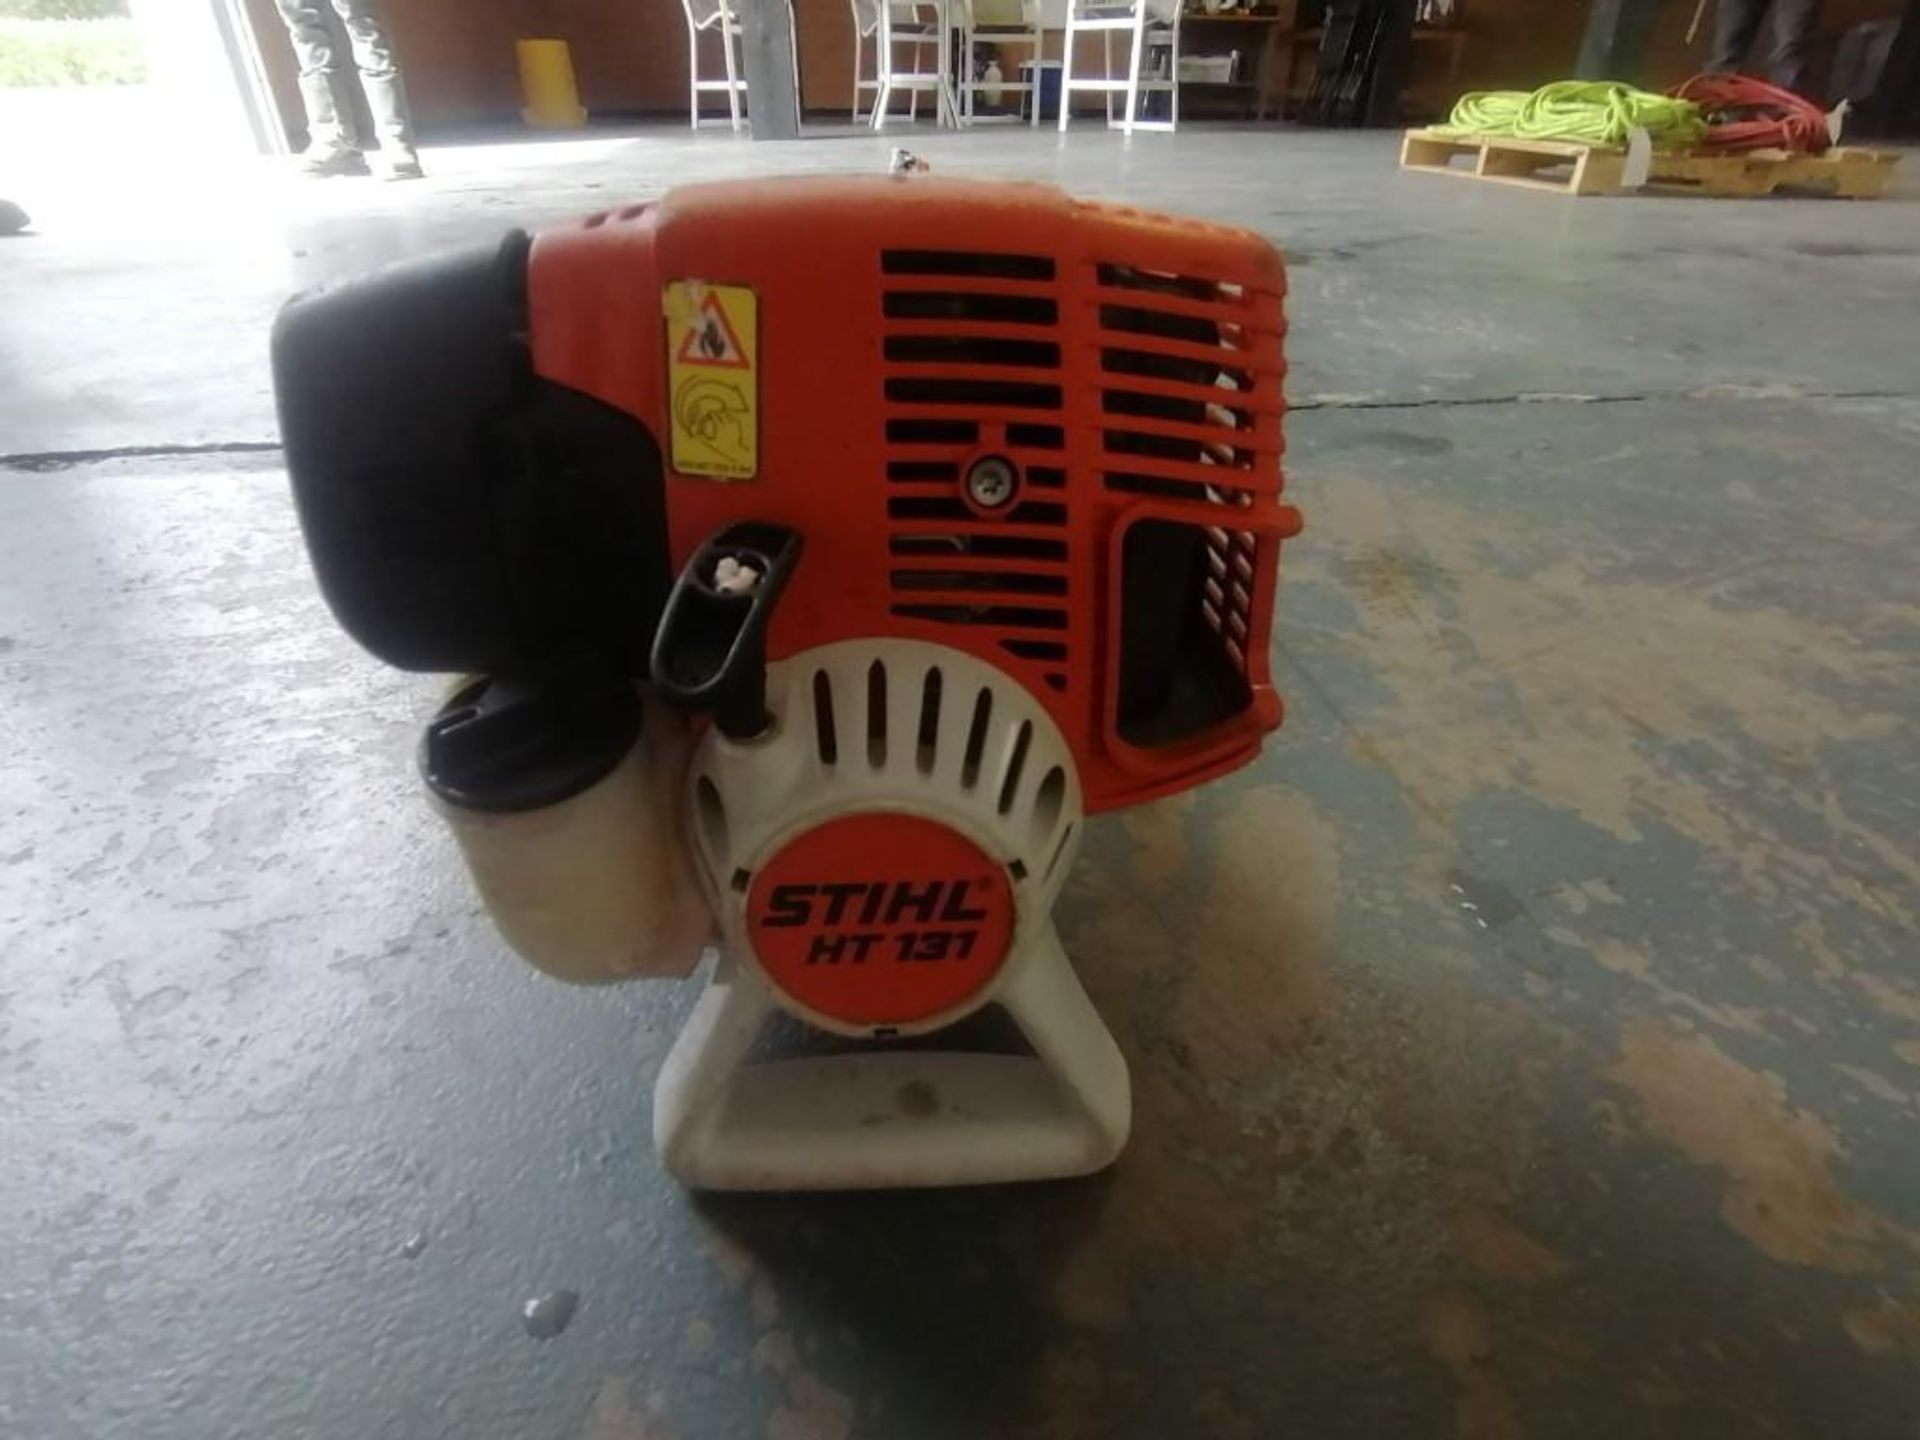 Lot 30 - (1) Stihl HT131 Long Reach Chainsaw. Located at 301 E Henry Street, Mt. Pleasant, IA 52641.